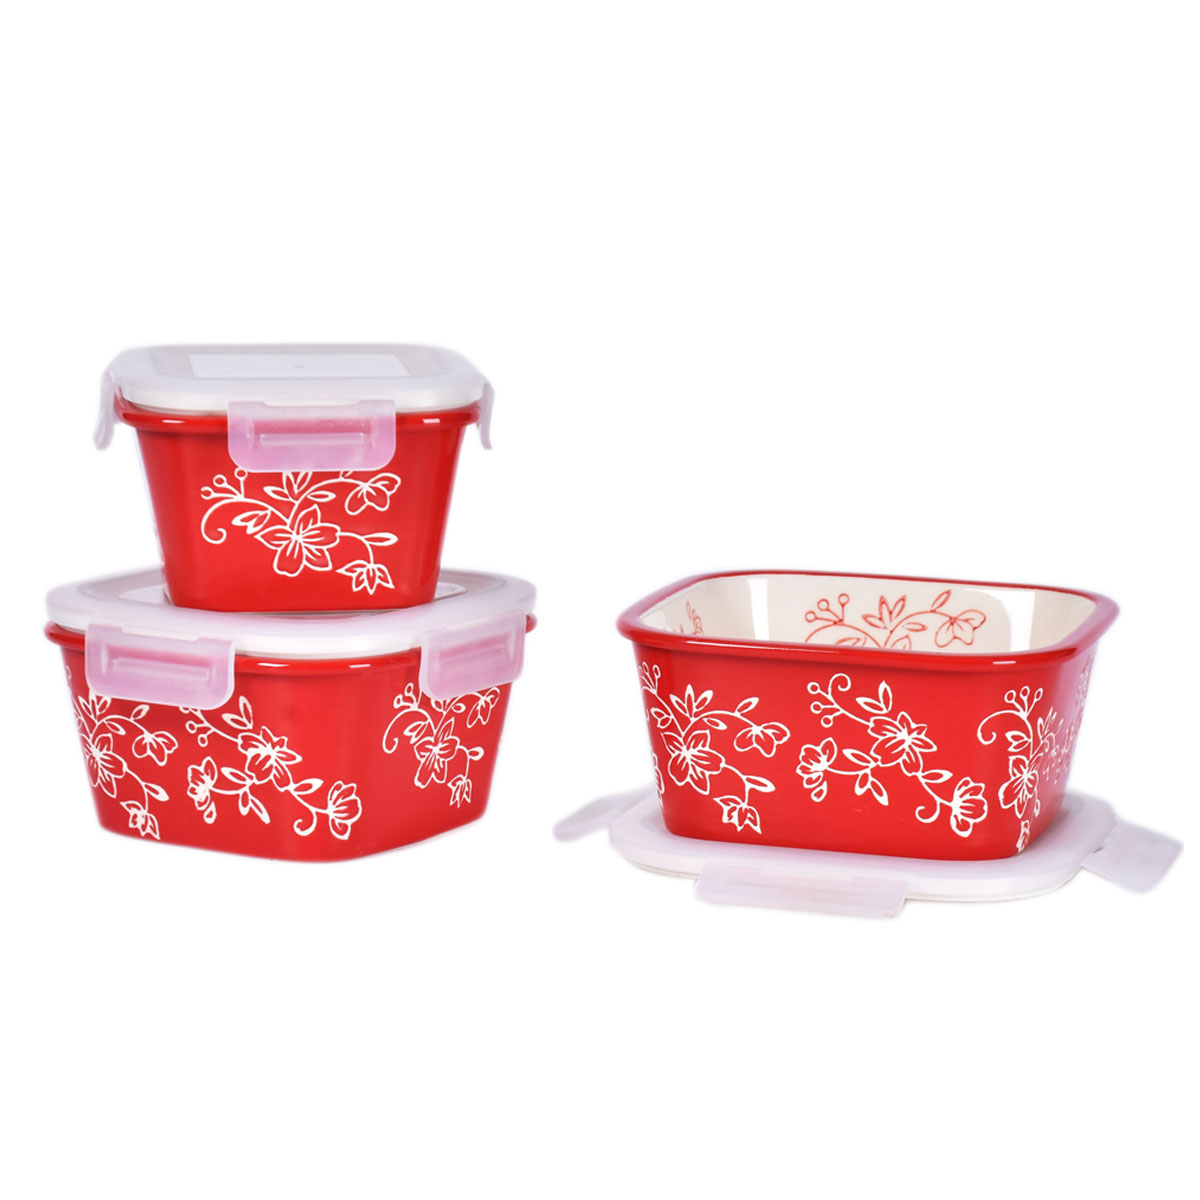 temp-tations® Floral Lace Nesting Square Ceramic Containers with Lid – 3 Piece – Red